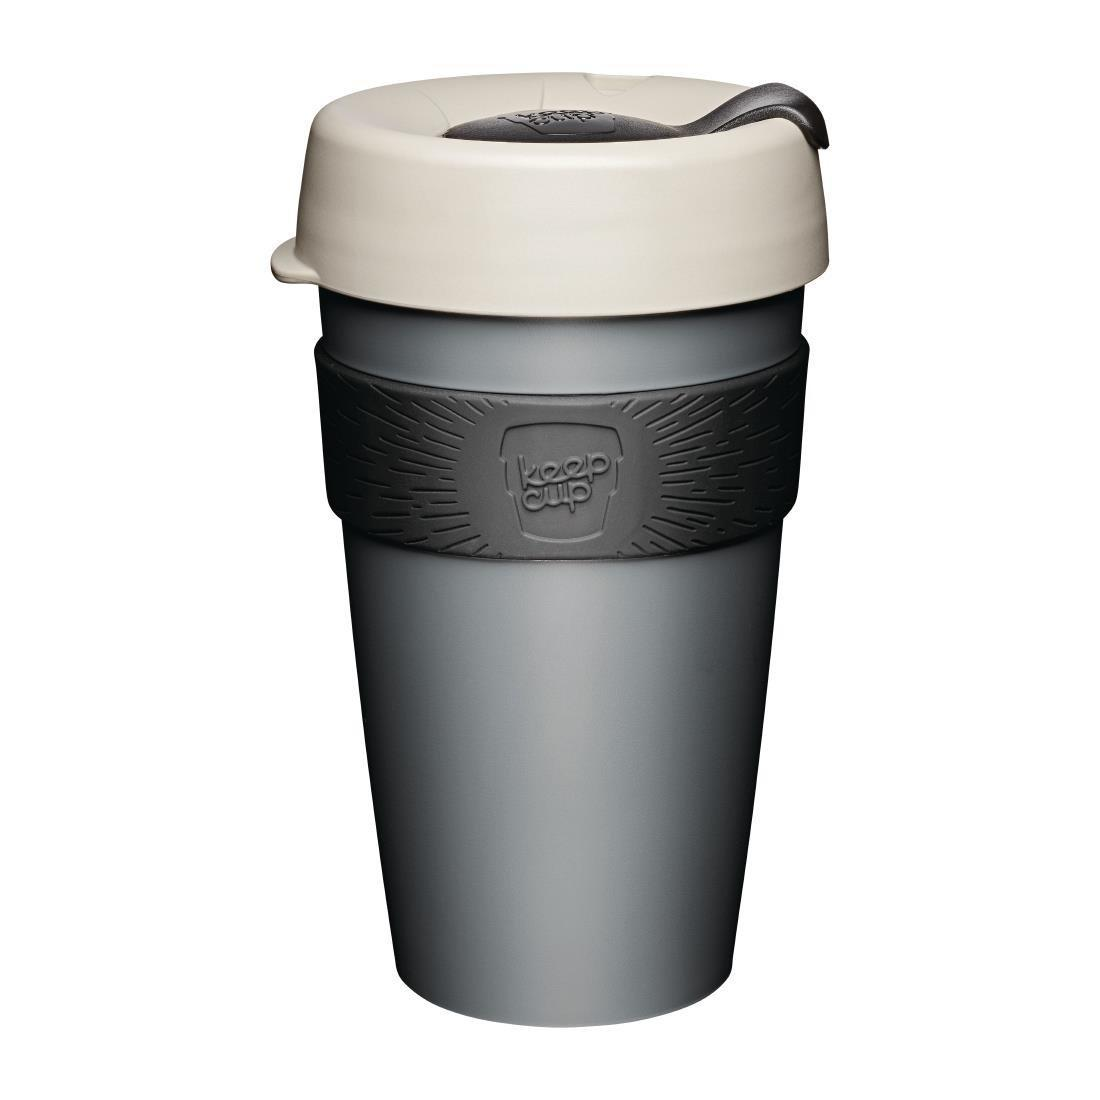 KeepCup Original Reusable Coffee Cup Nitro 16oz - Each - CW969